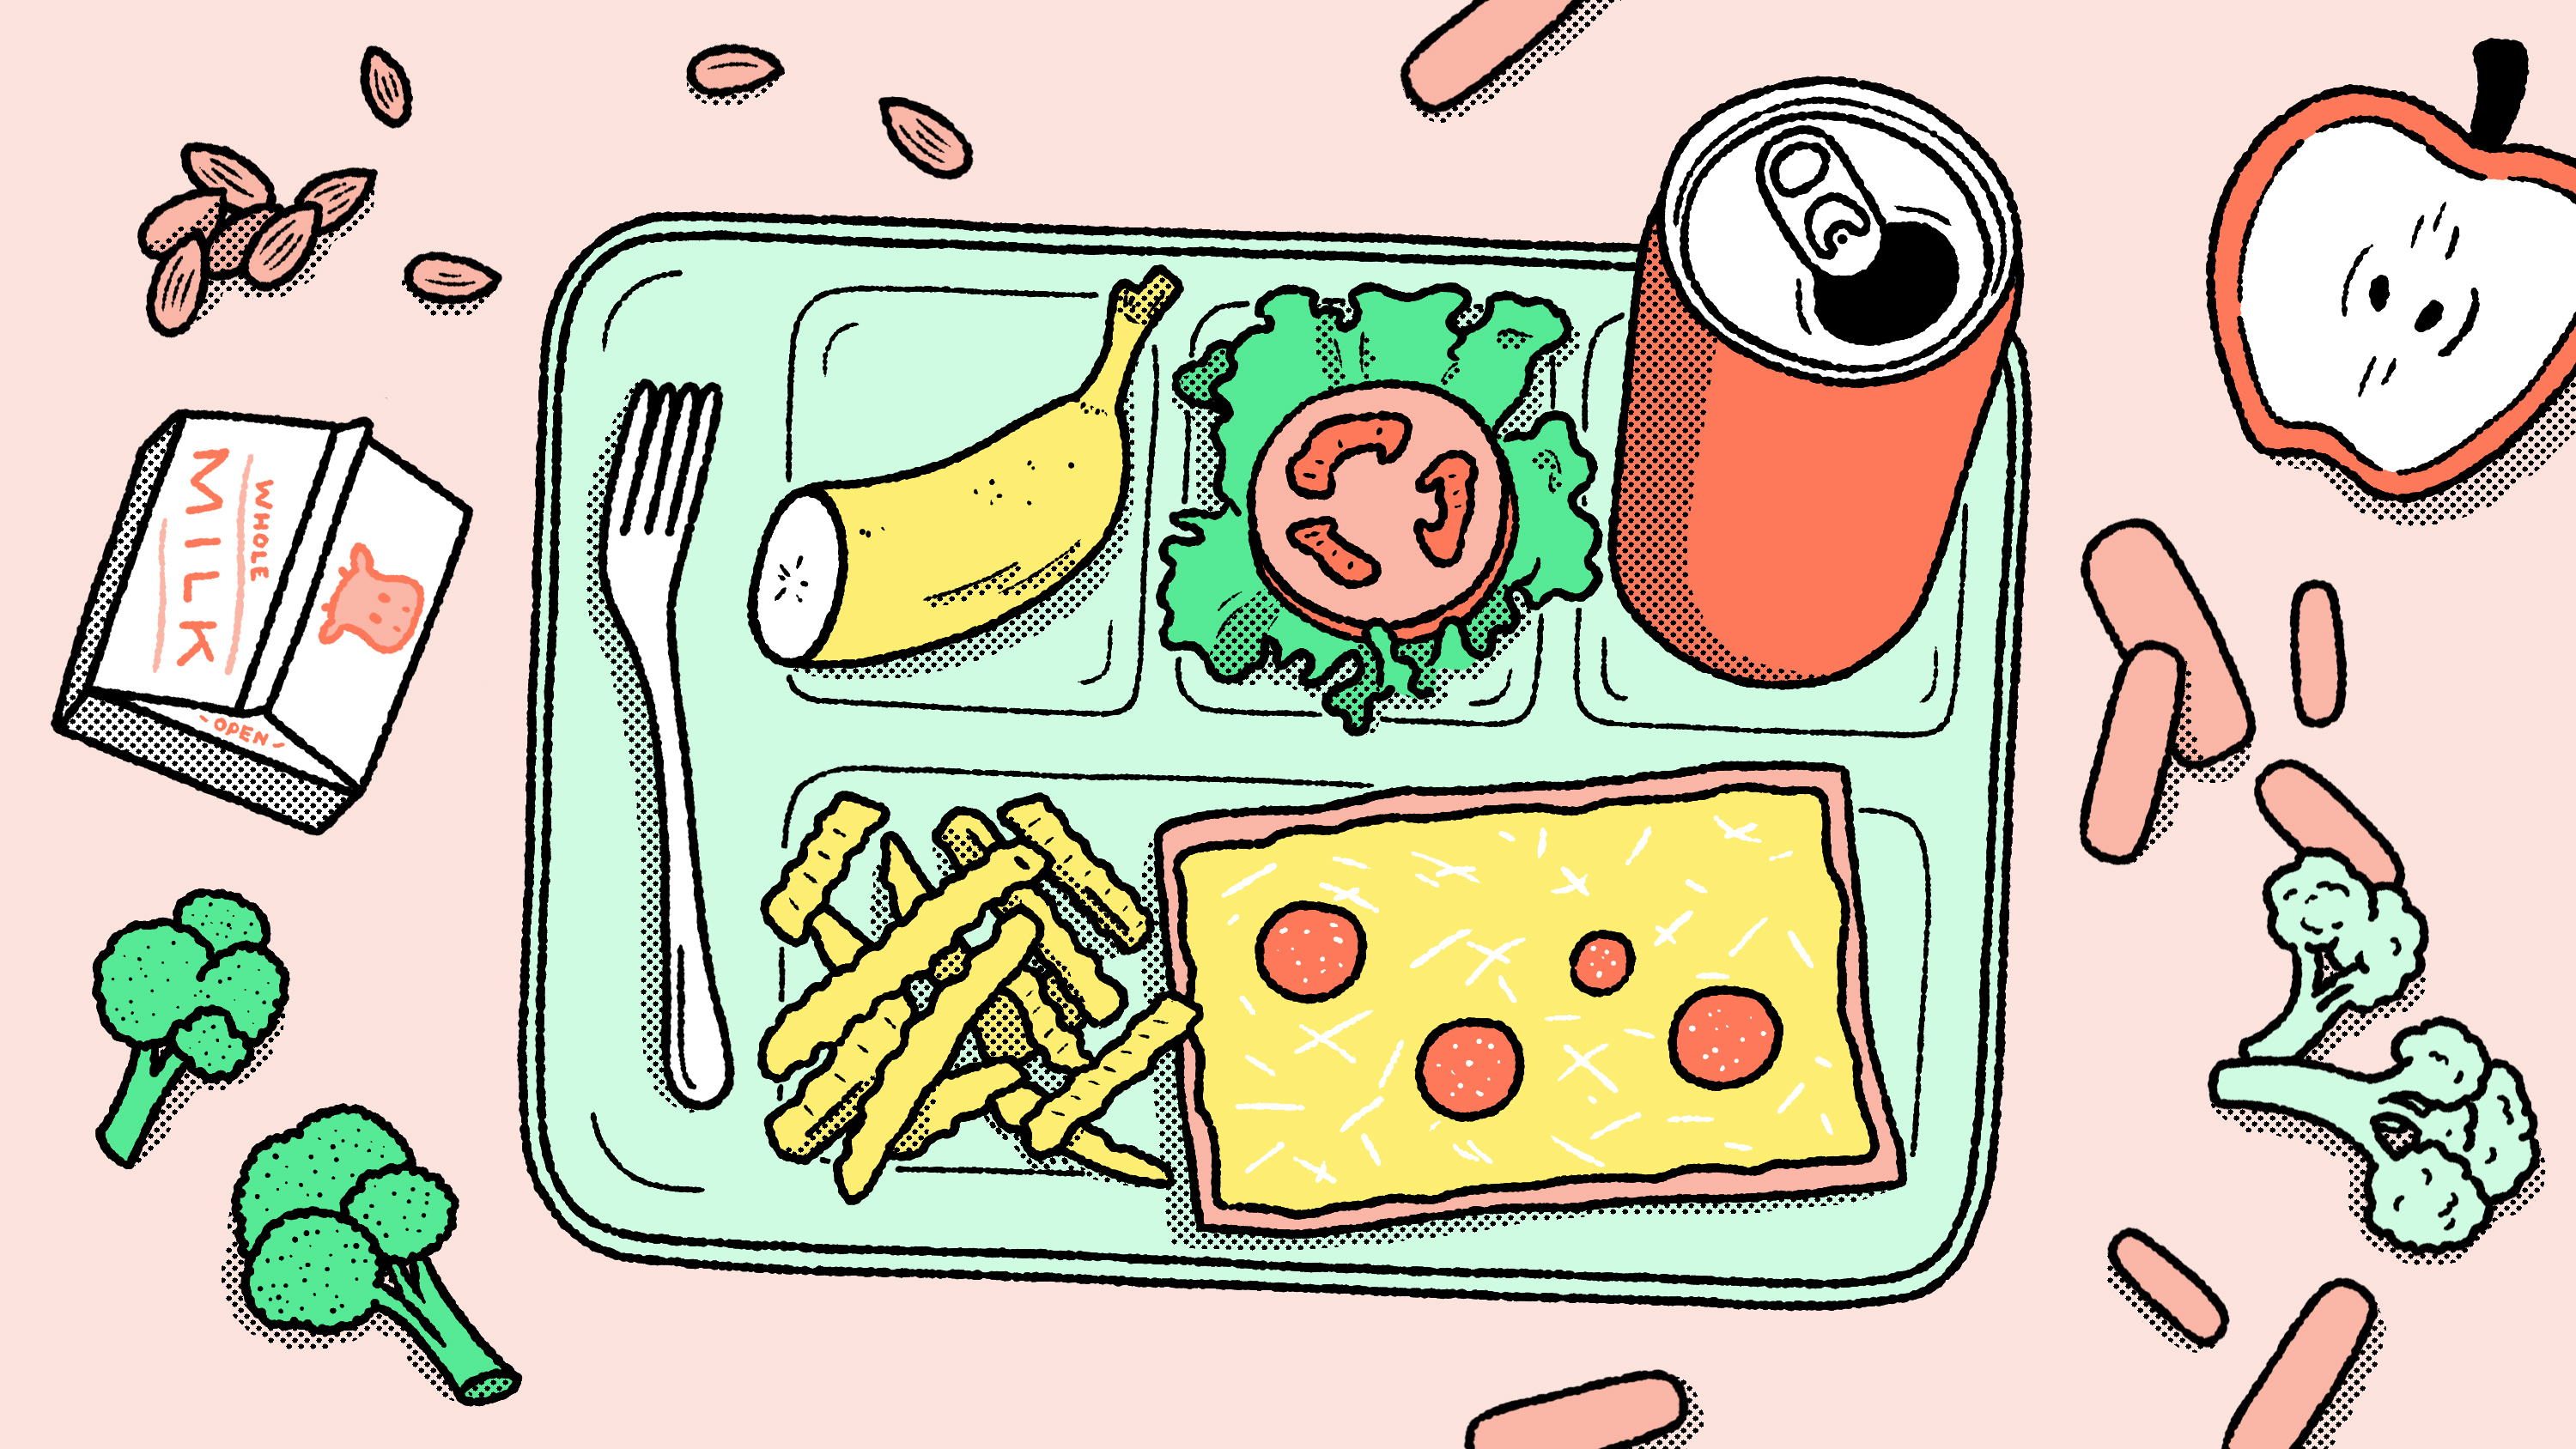 An illustration of a school lunch tray with soda, fries, pizza, and half a banana.